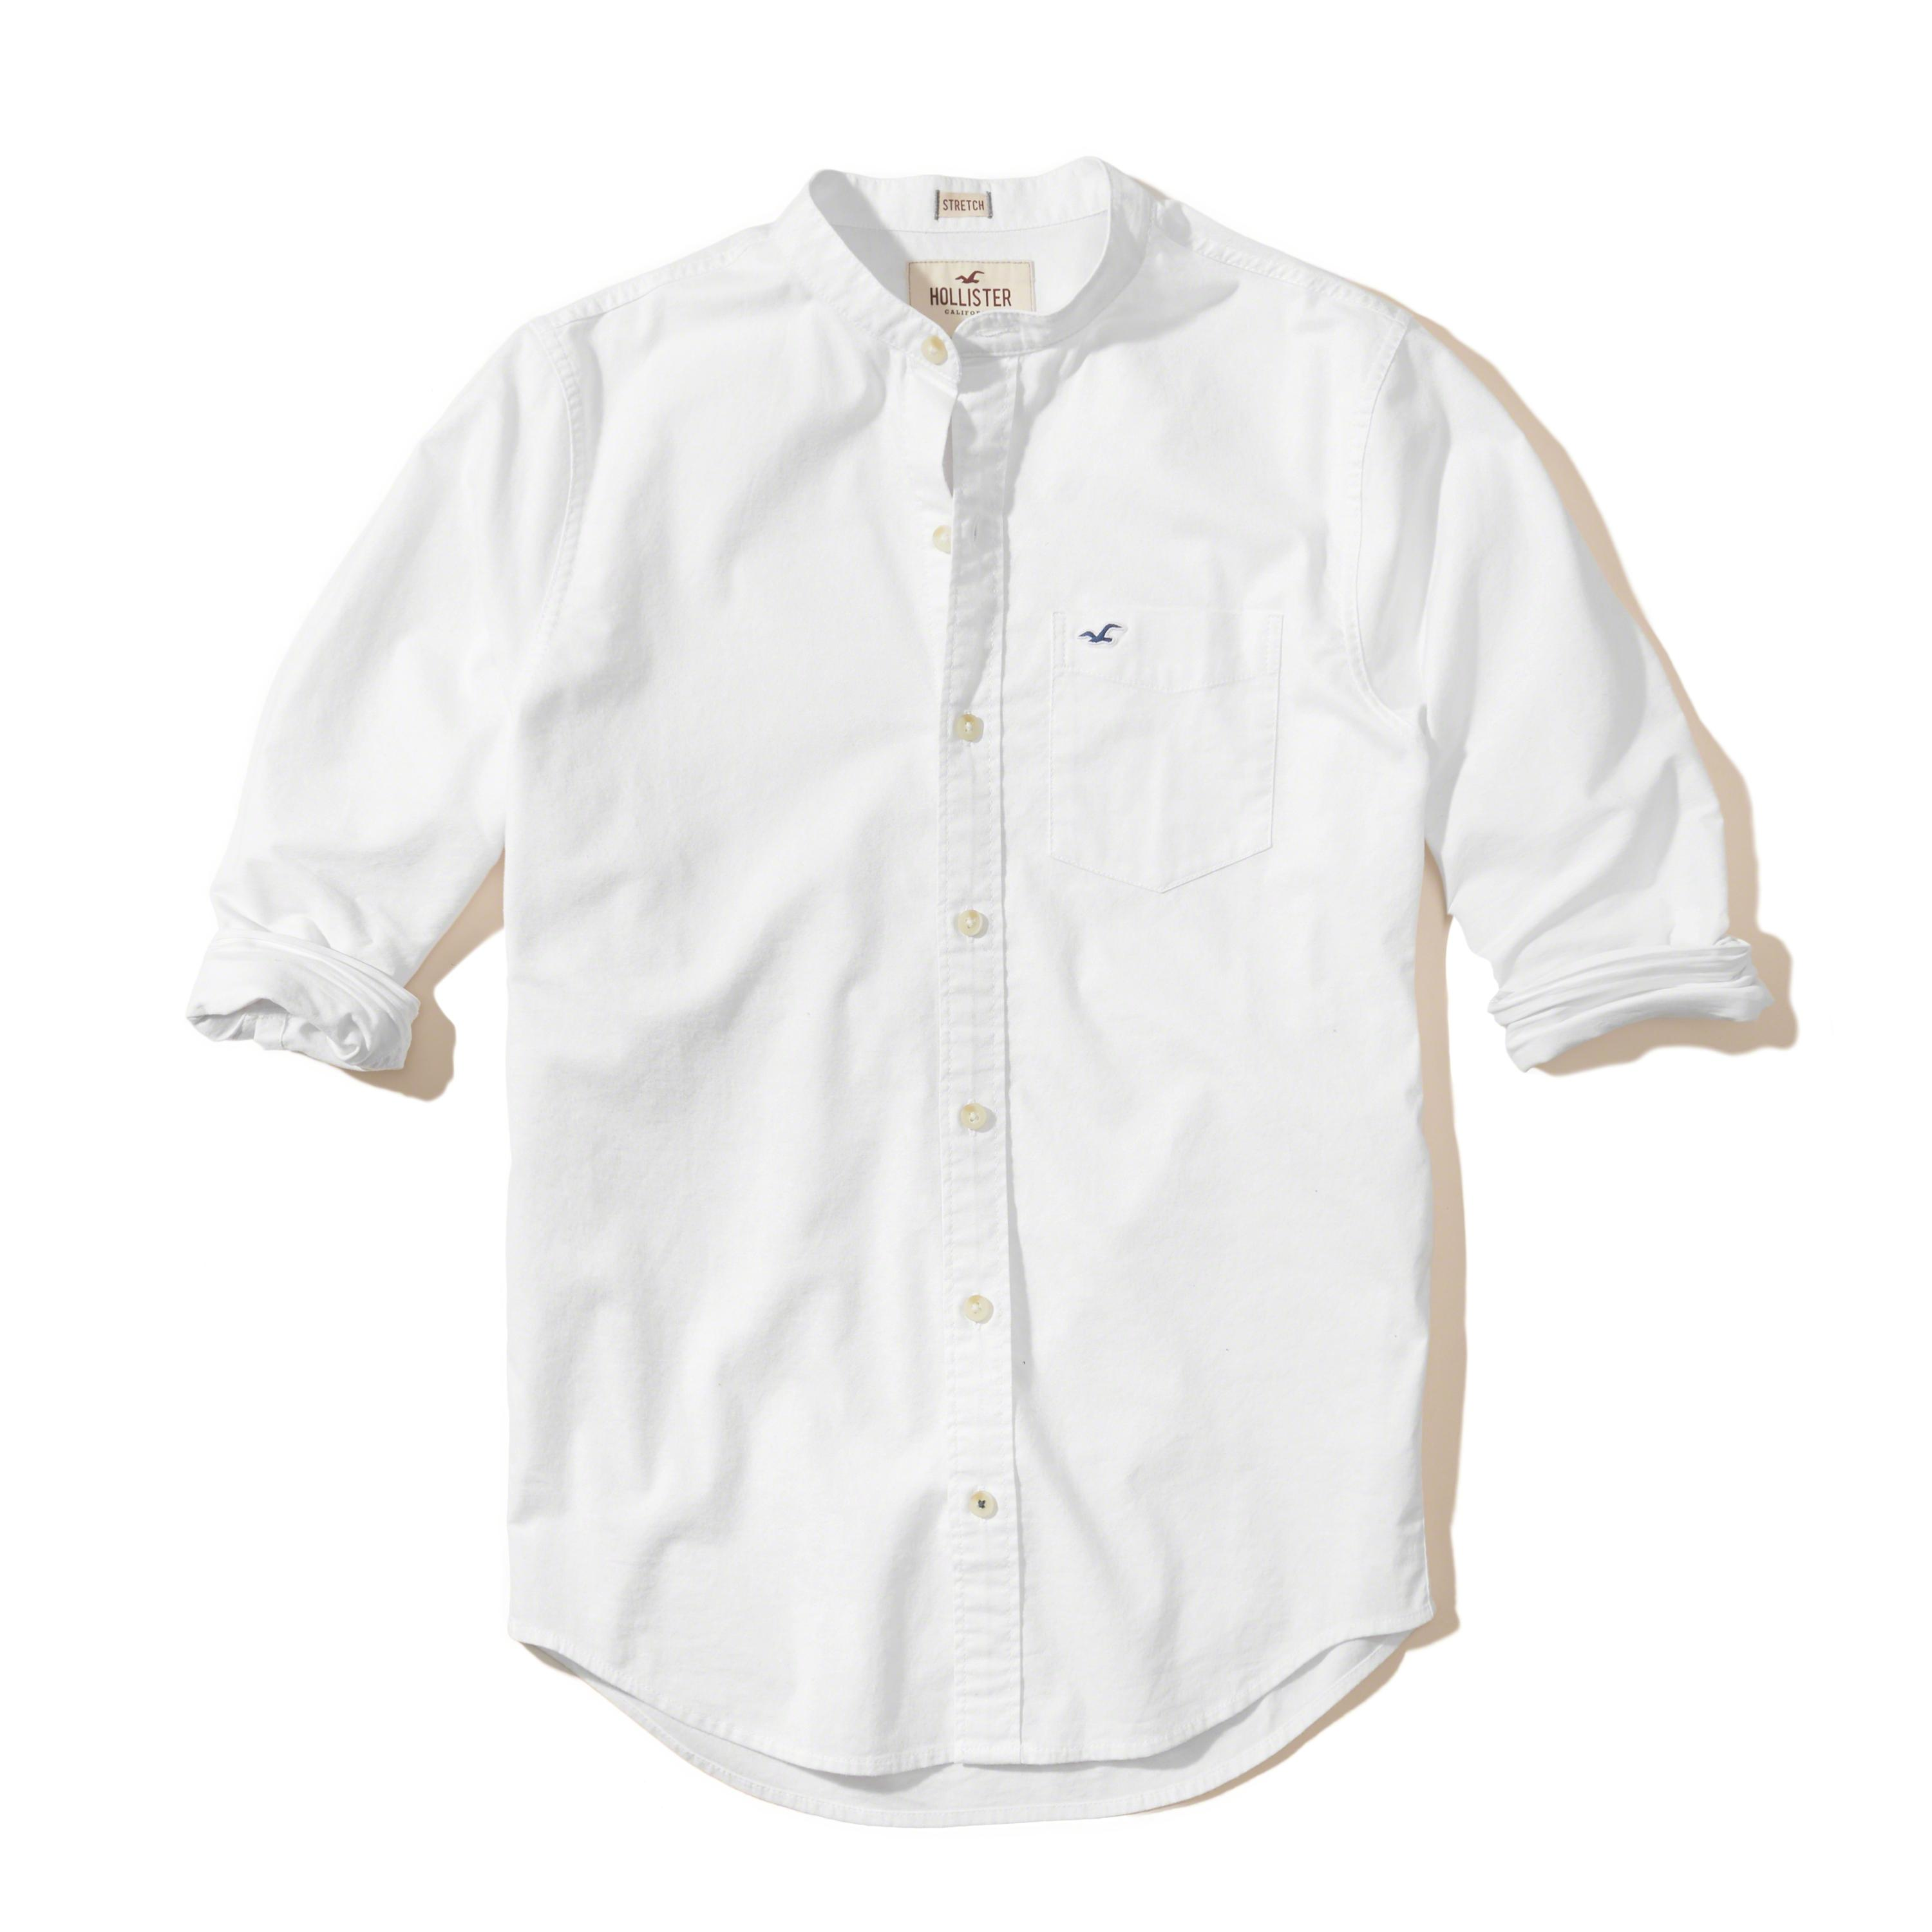 Lyst Hollister Stretch Banded Collar Oxford Shirt In White For Men